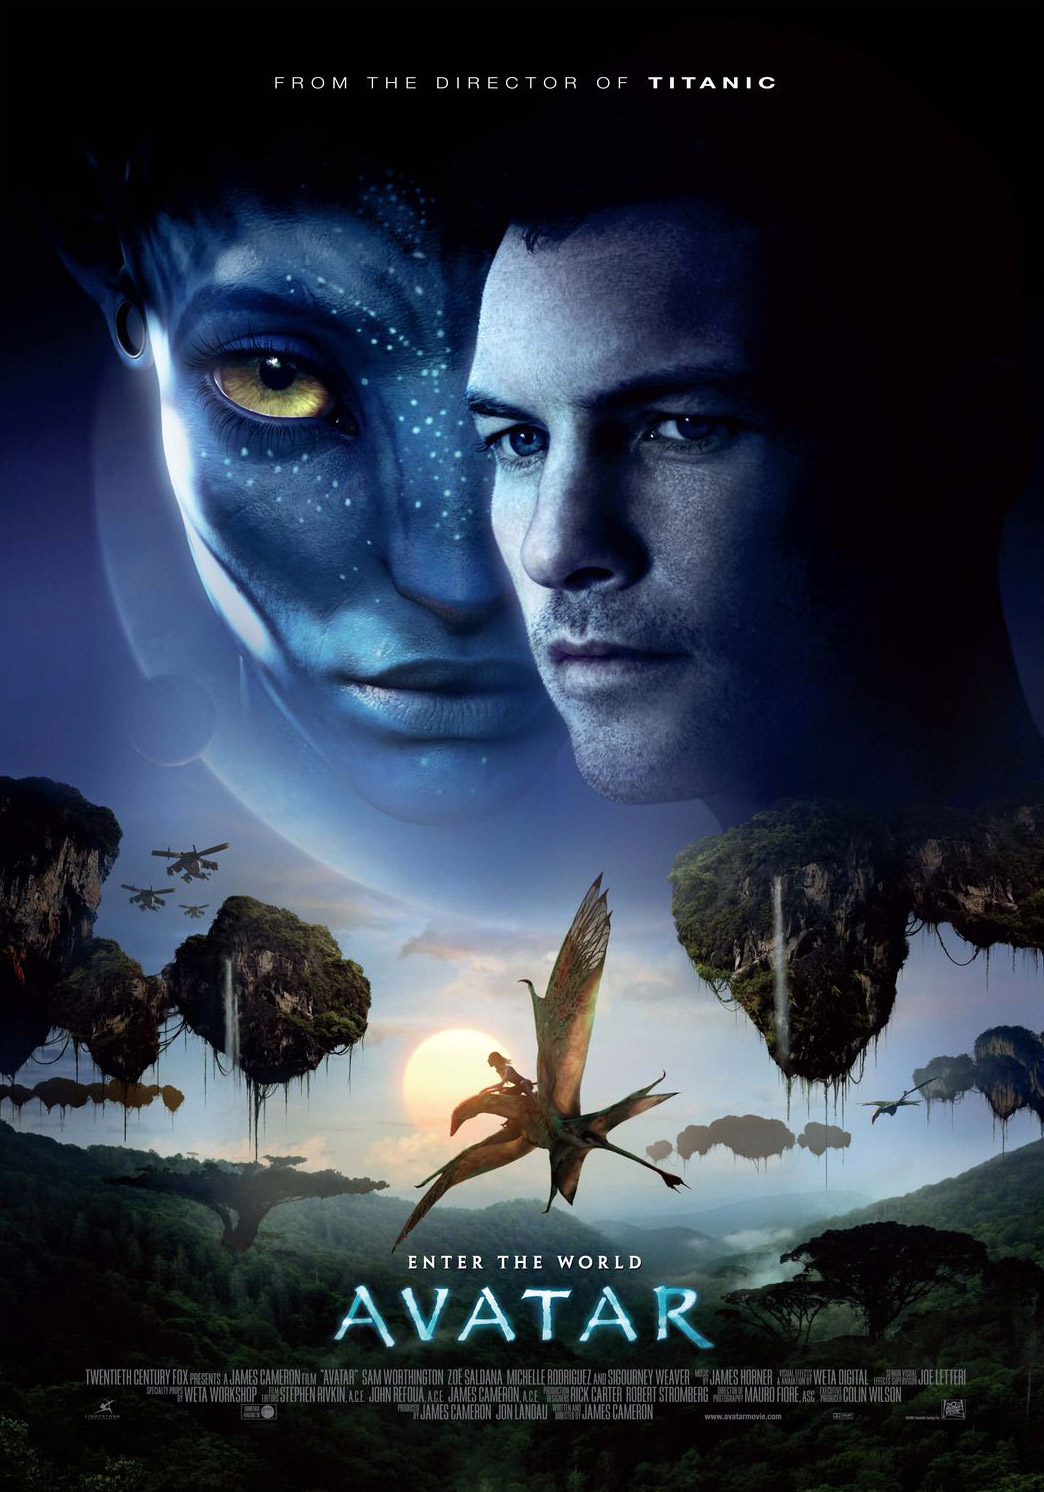 avatar movie poster design